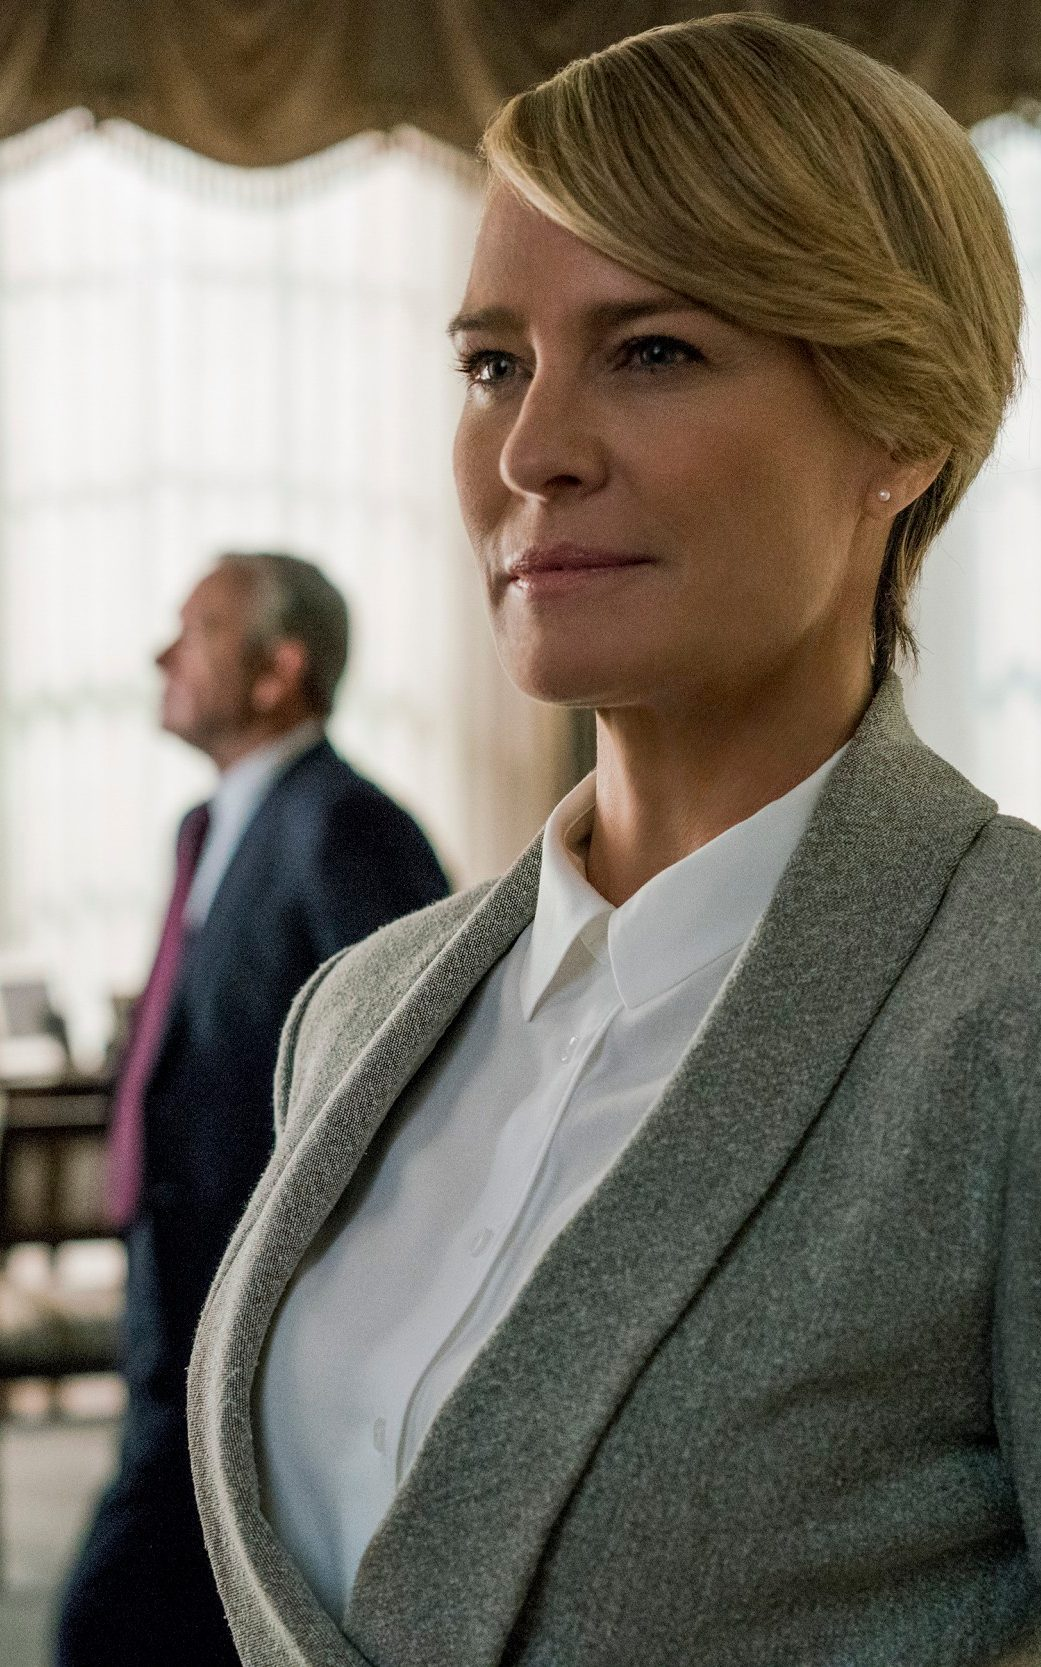 Claire Underwood Hair : claire, underwood, Sexy,, Never, Revealing':, House, Cards', Costume, Designer, Claire, Underwood's